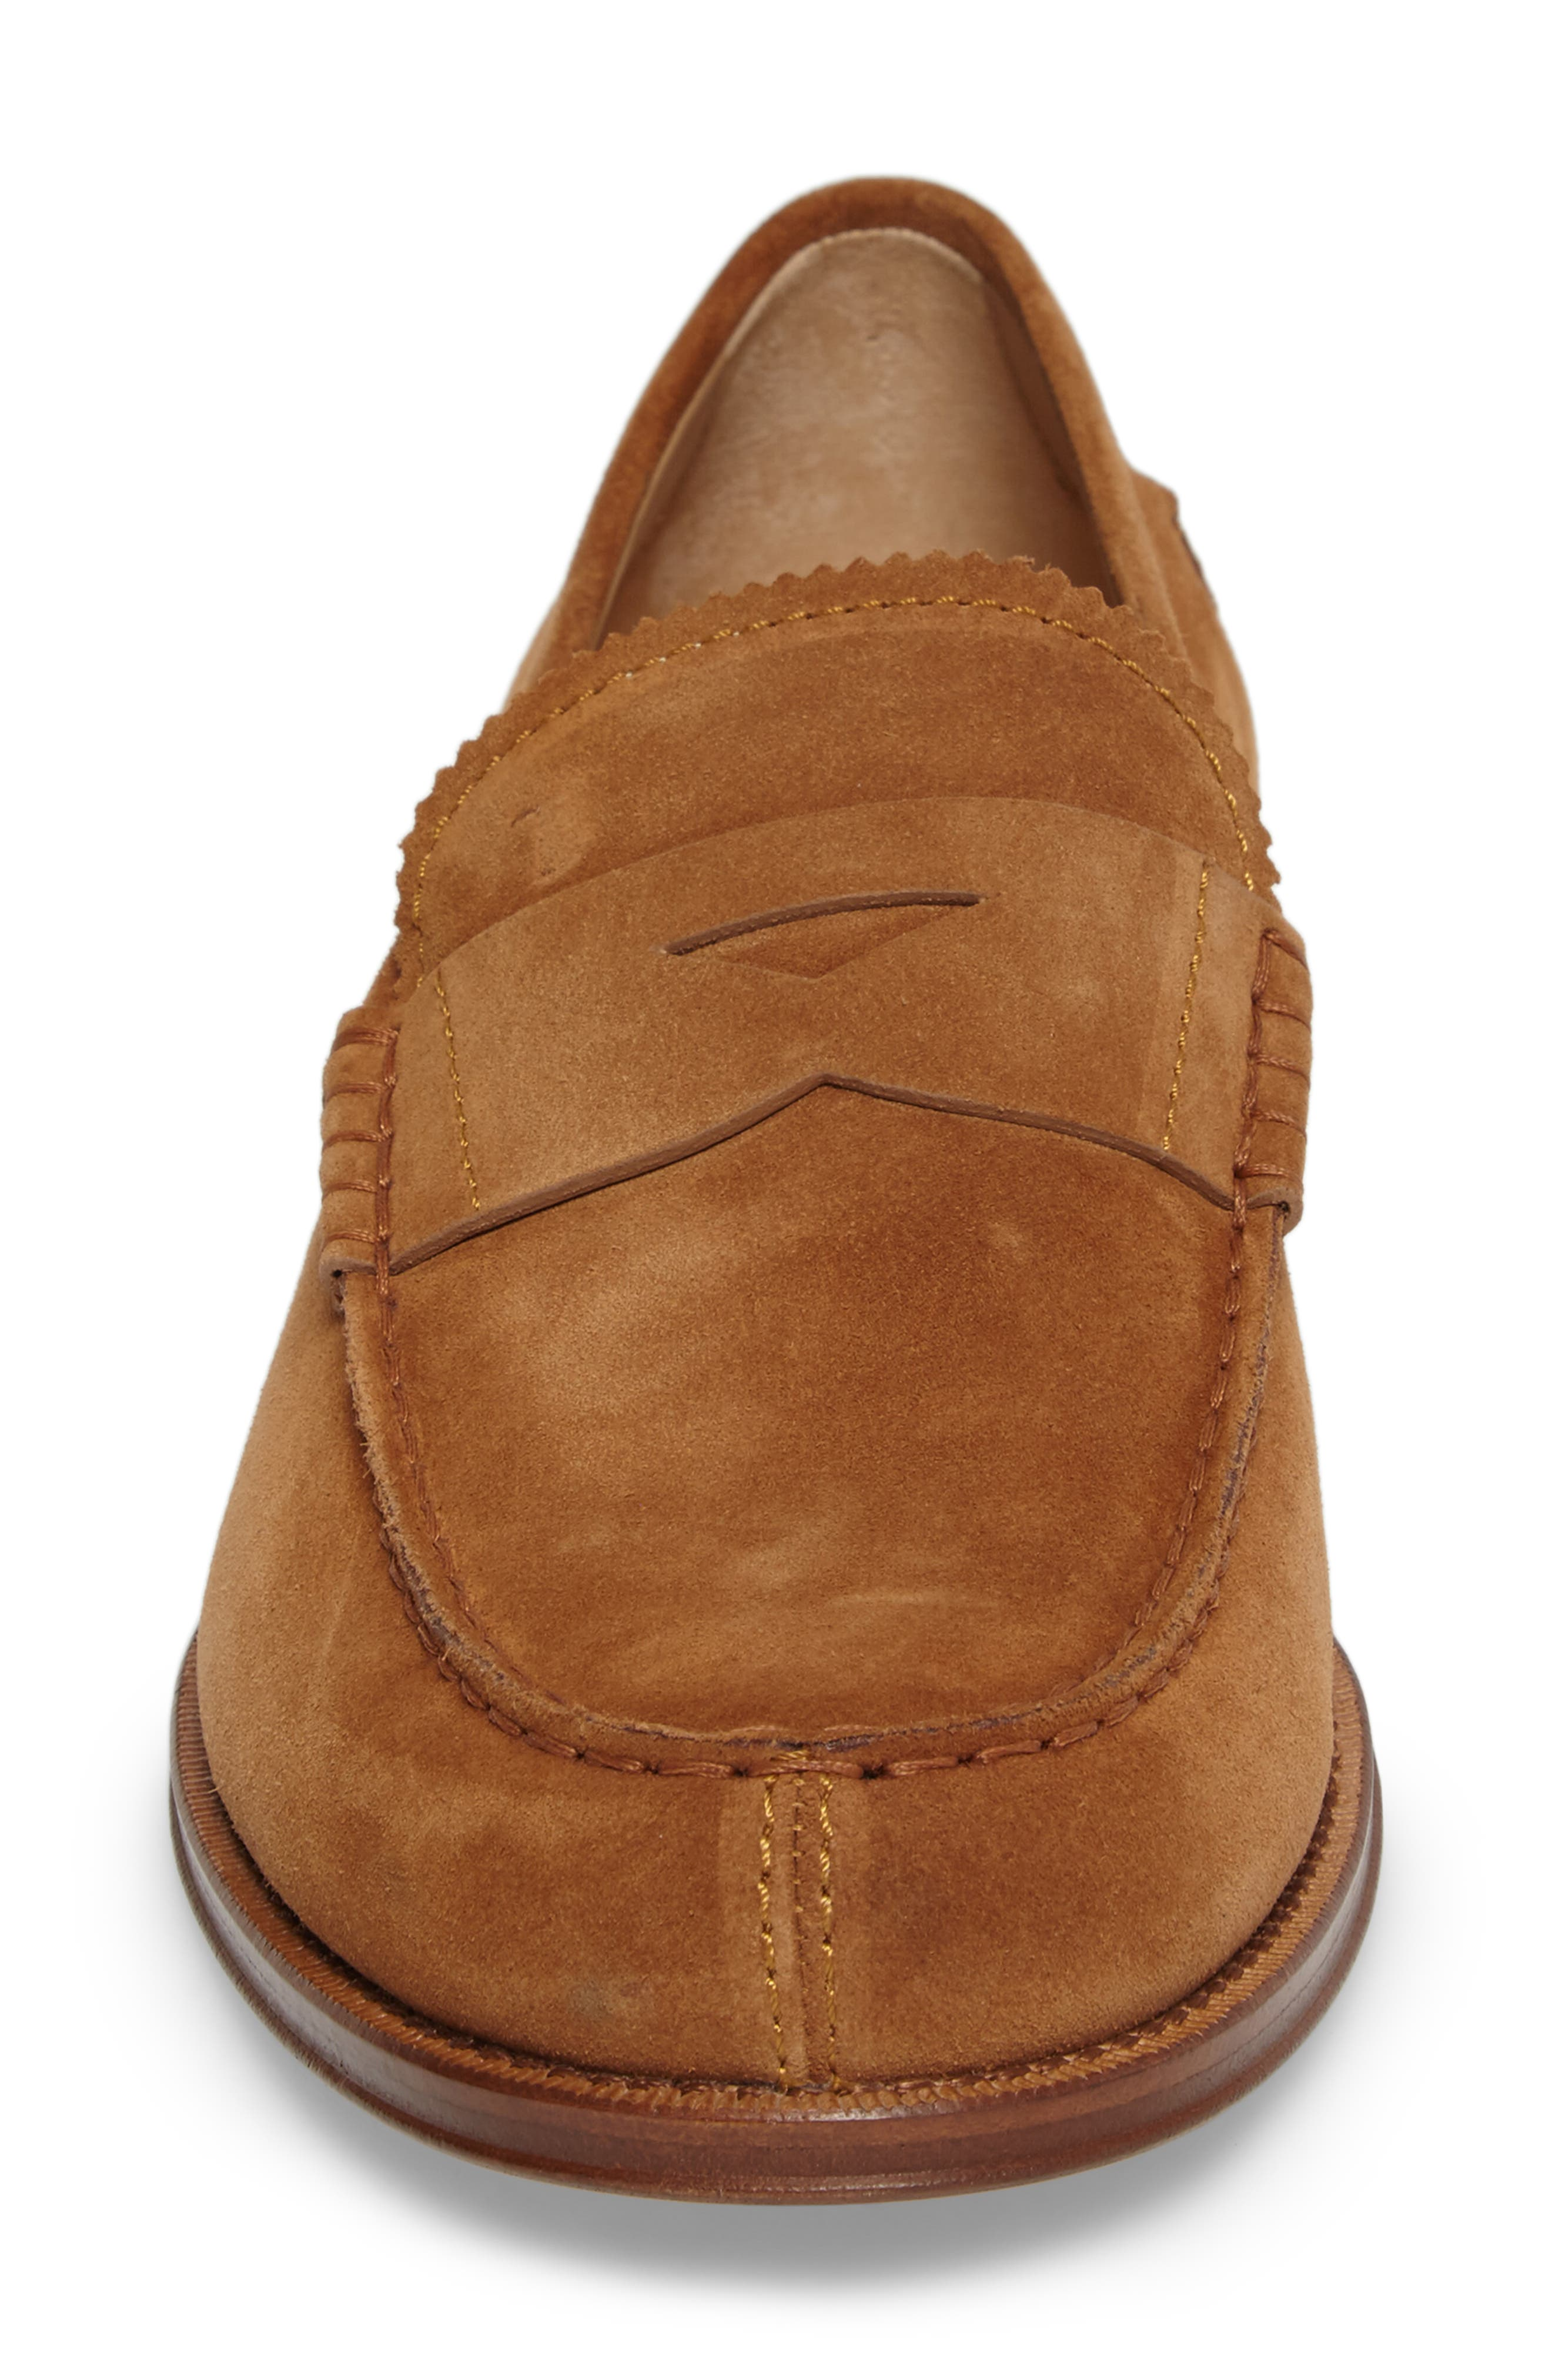 Suede Penny Loafer,                             Alternate thumbnail 4, color,                             215